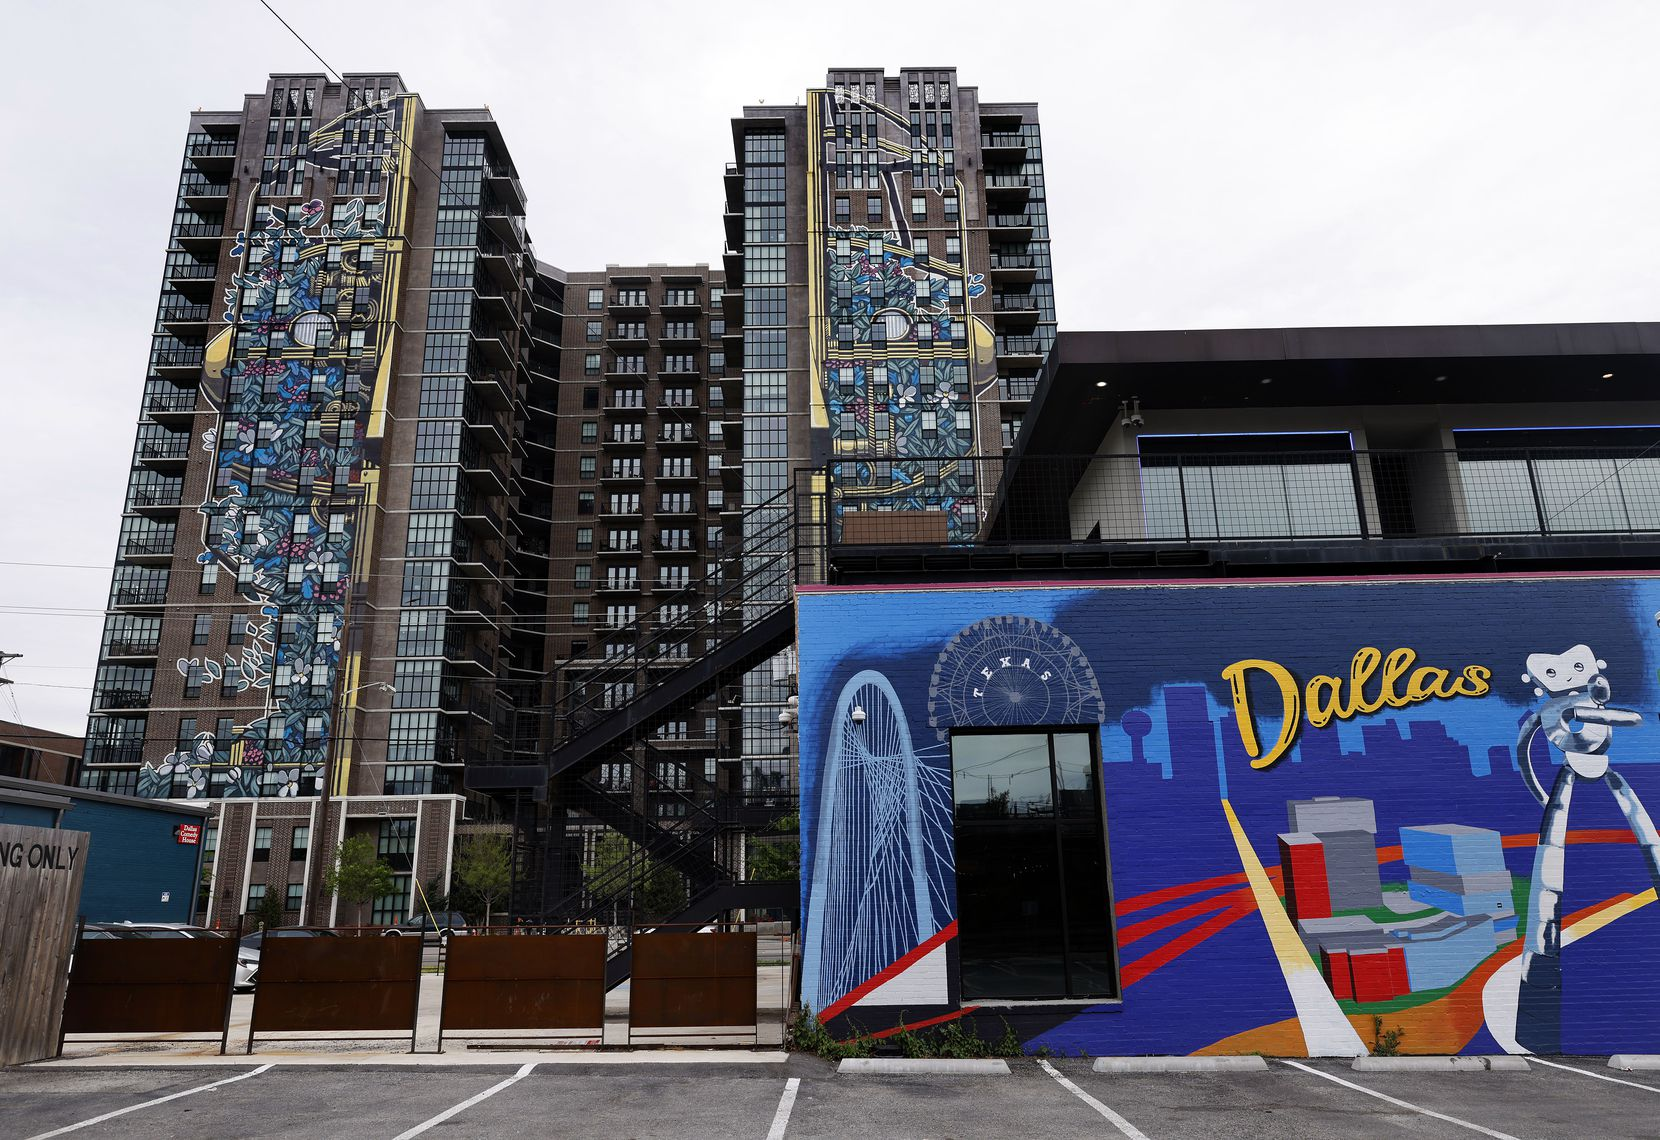 Large art murals run the length of the high-rise Case Building at 3131 Main St. in the Deep Ellum area of Dallas.